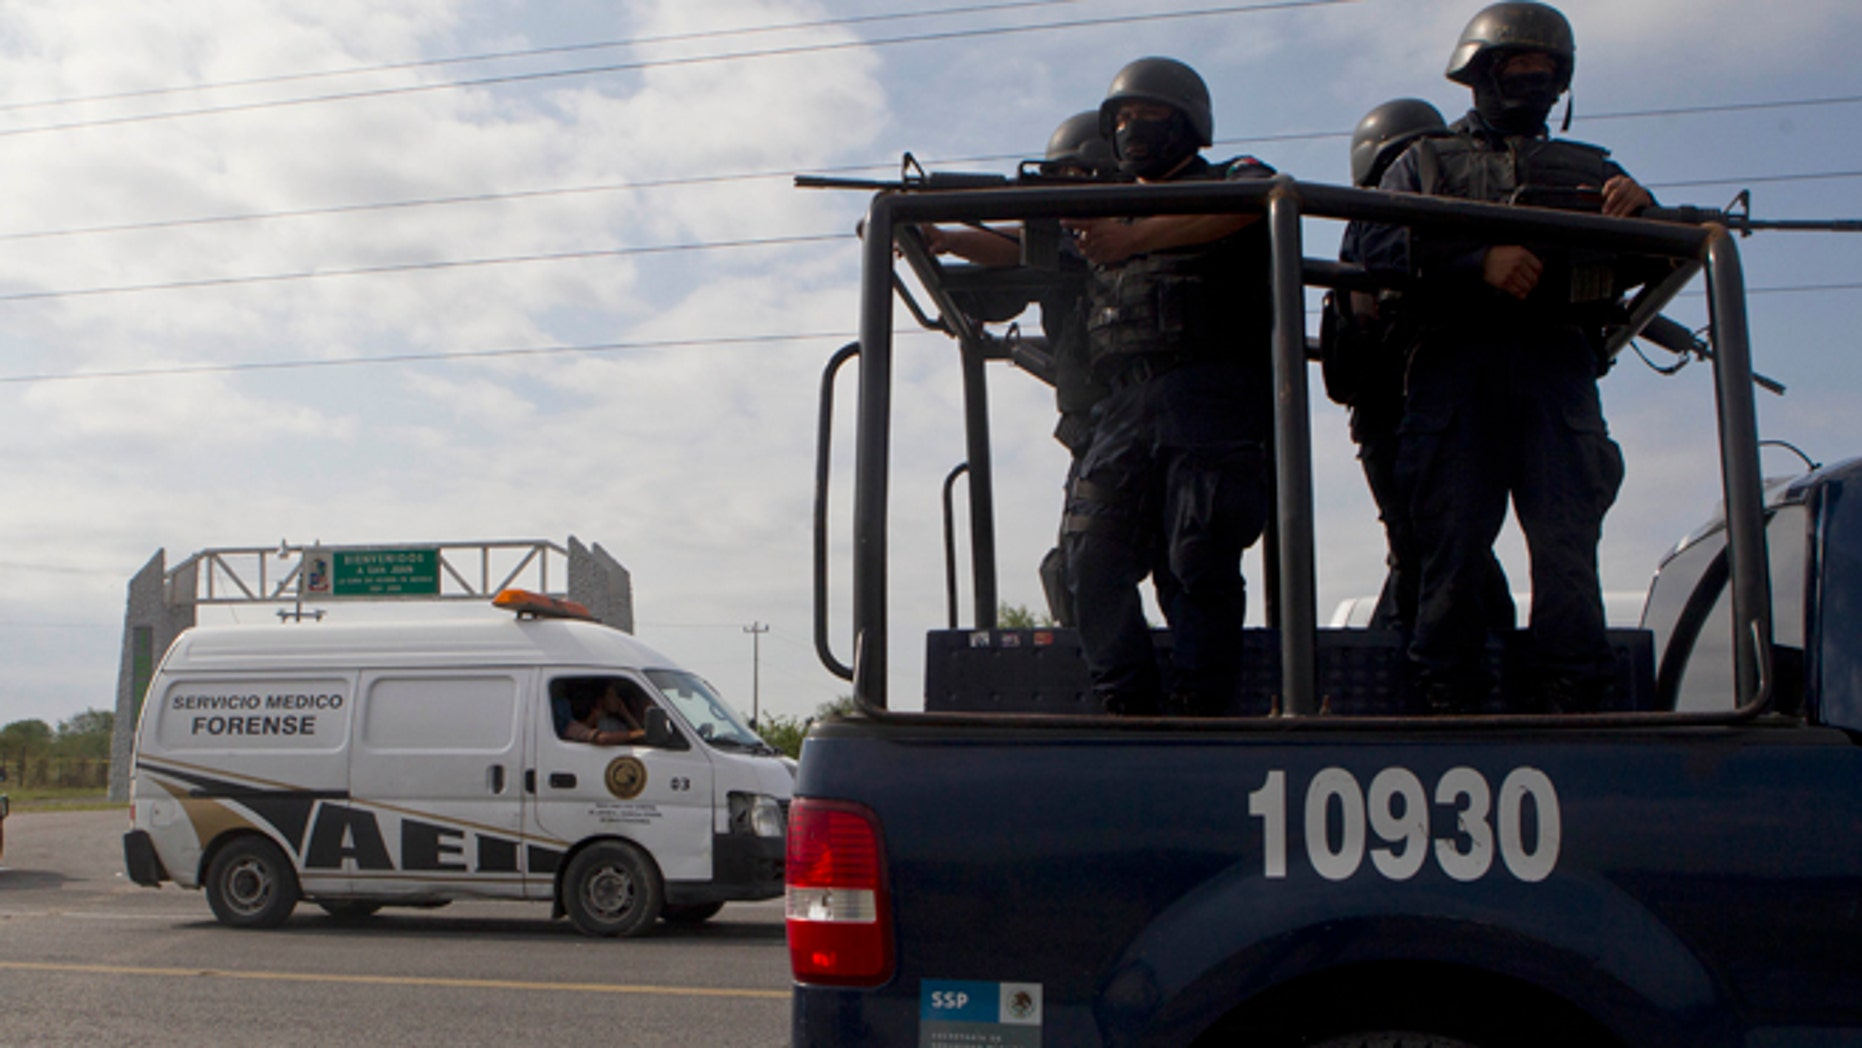 Federal police on a vehicle guard one of the three forensic trucks where several bodies were placed after dozens of bodies, some of them mutilated, were found on a highway connecting the northern Mexican metropolis of Monterrey to the U.S. border found in the Km 47 of the Reynosa-Cadereyta road in the town of San Juan near the city of Monterrey, Mexico,  Sunday, May 13, 2012. (AP Photo/Christian Palma)